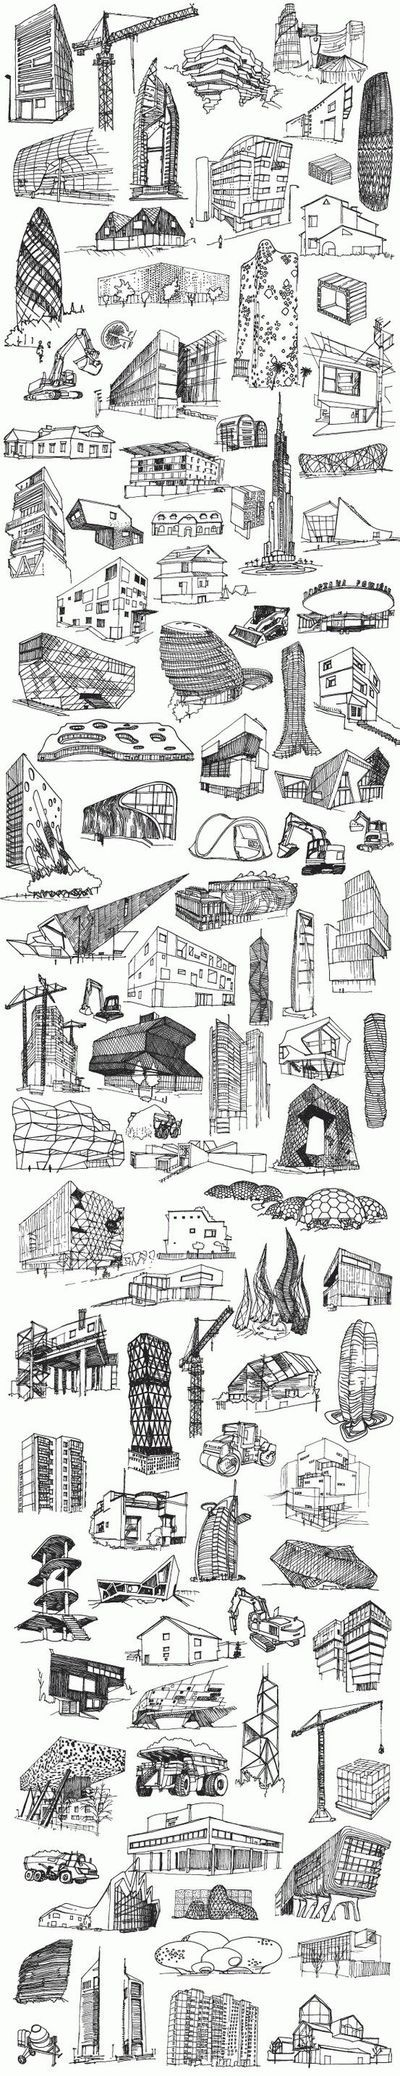 Poster design drawing - Find This Pin And More On Poster Design By Jennasolo17